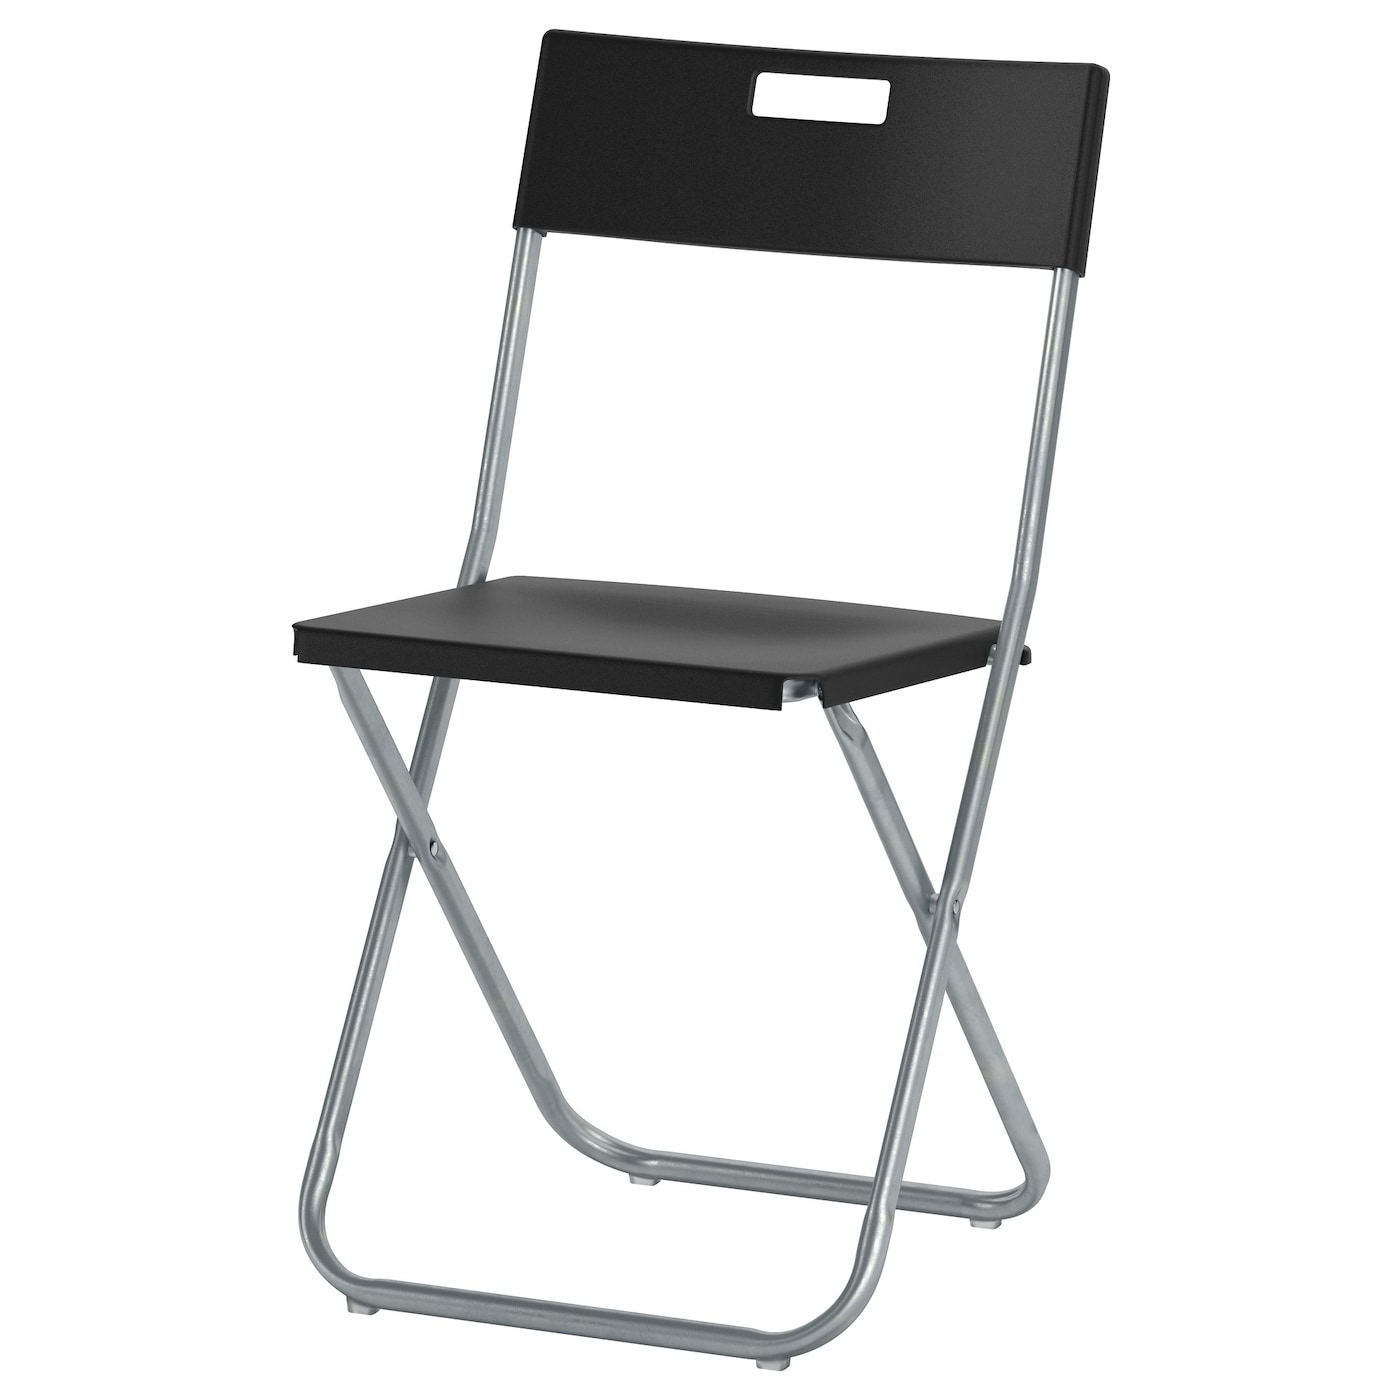 High Quality IKEA GUNDE Folding Chair You Can Fold The Chair, So It Takes Less Space When